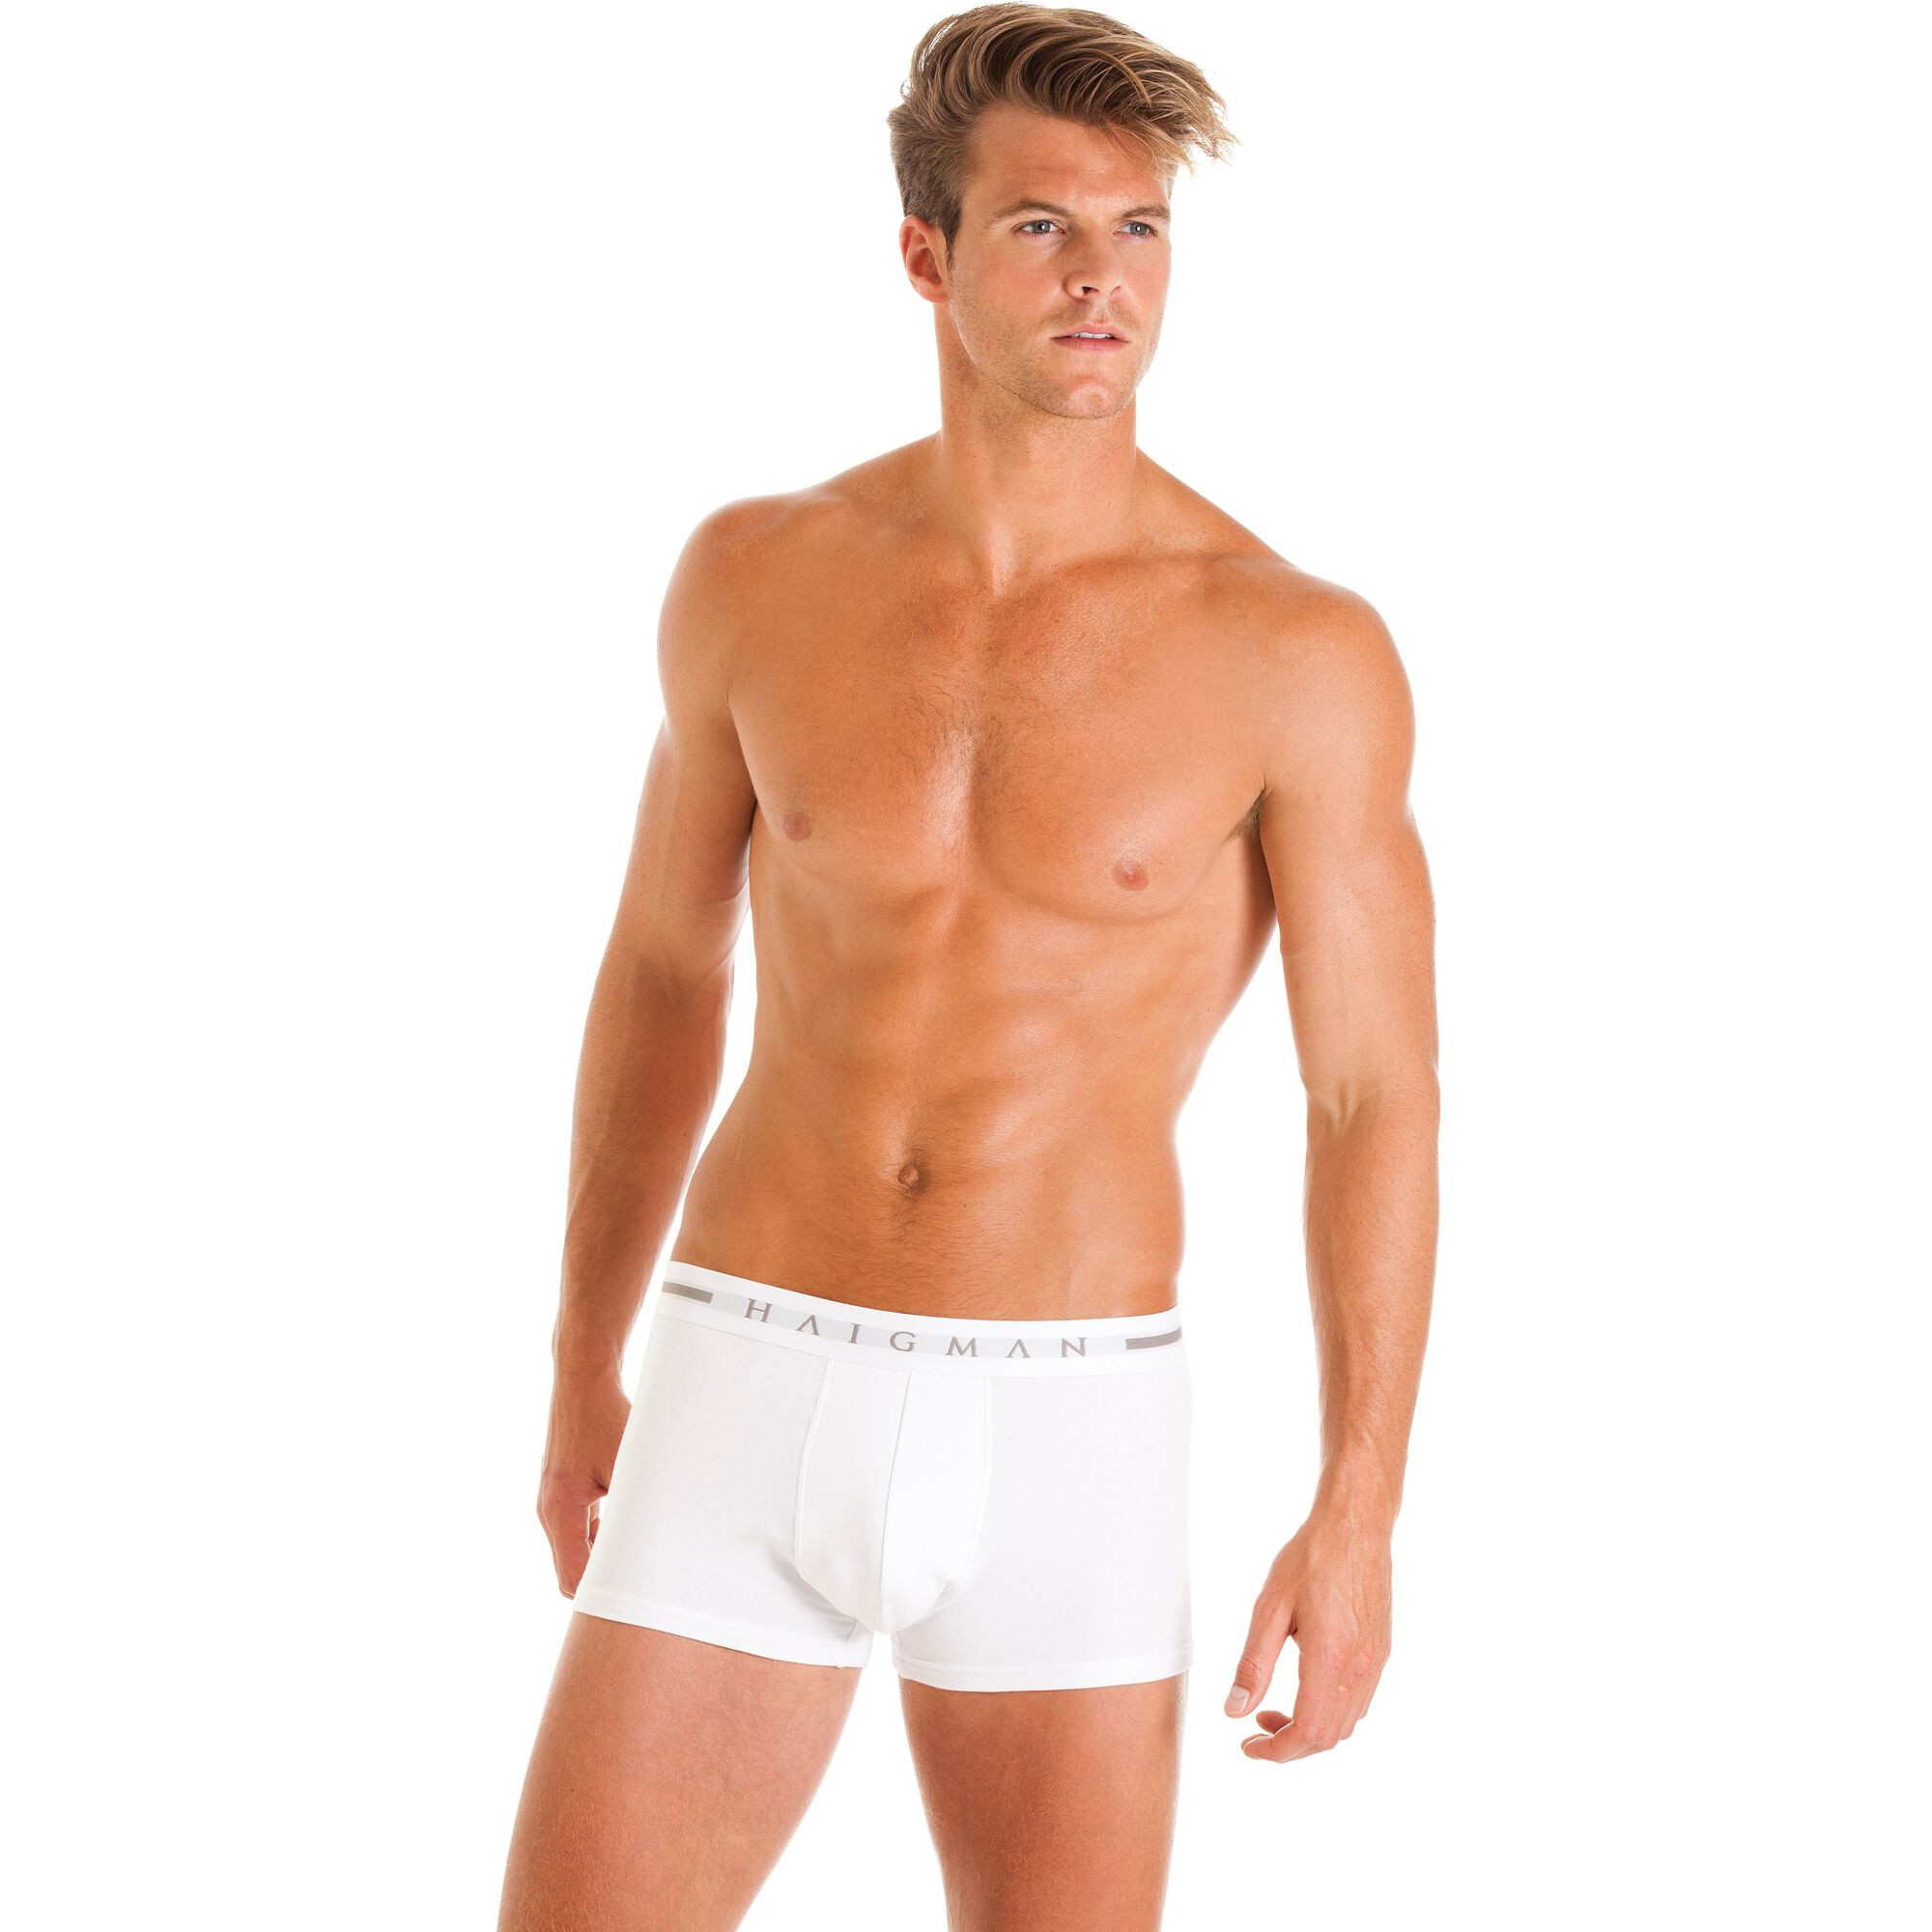 Haigman Trunks (3 Pack)